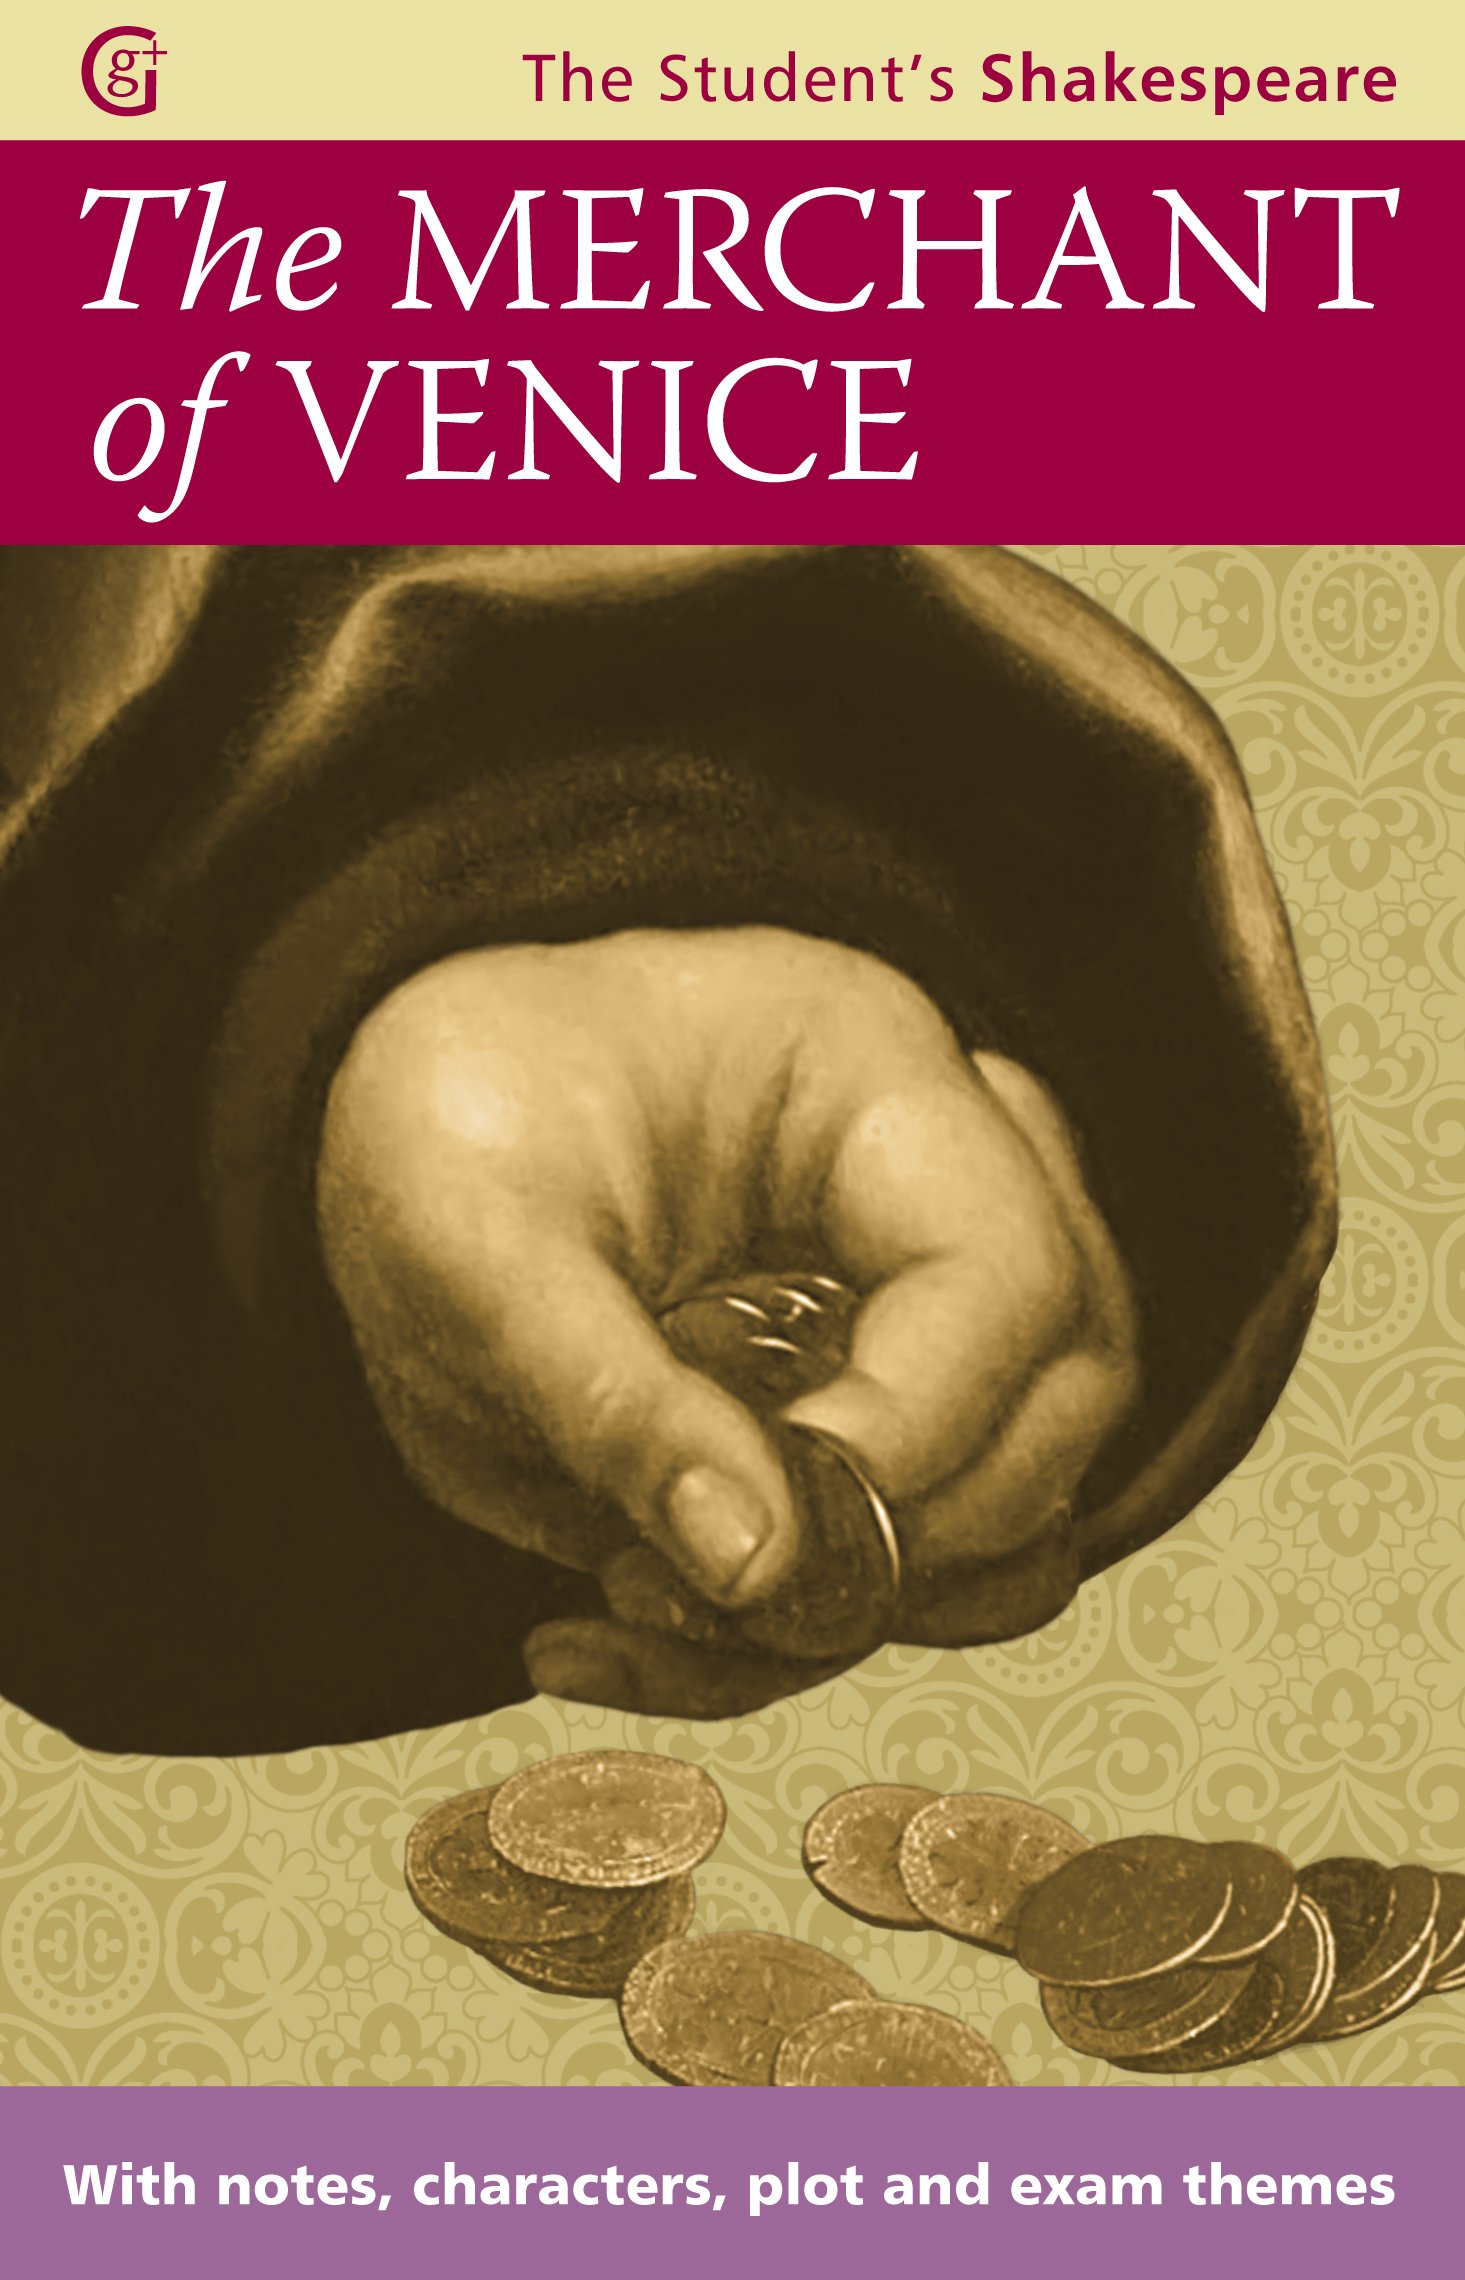 the theme of deception in the merchant of venice by william shakespeare Explore the different themes within william shakespeare's comedic play, the merchant of venice themes are central to understanding the merchant of venice as a play and identifying shakespeare's social and political commentary.